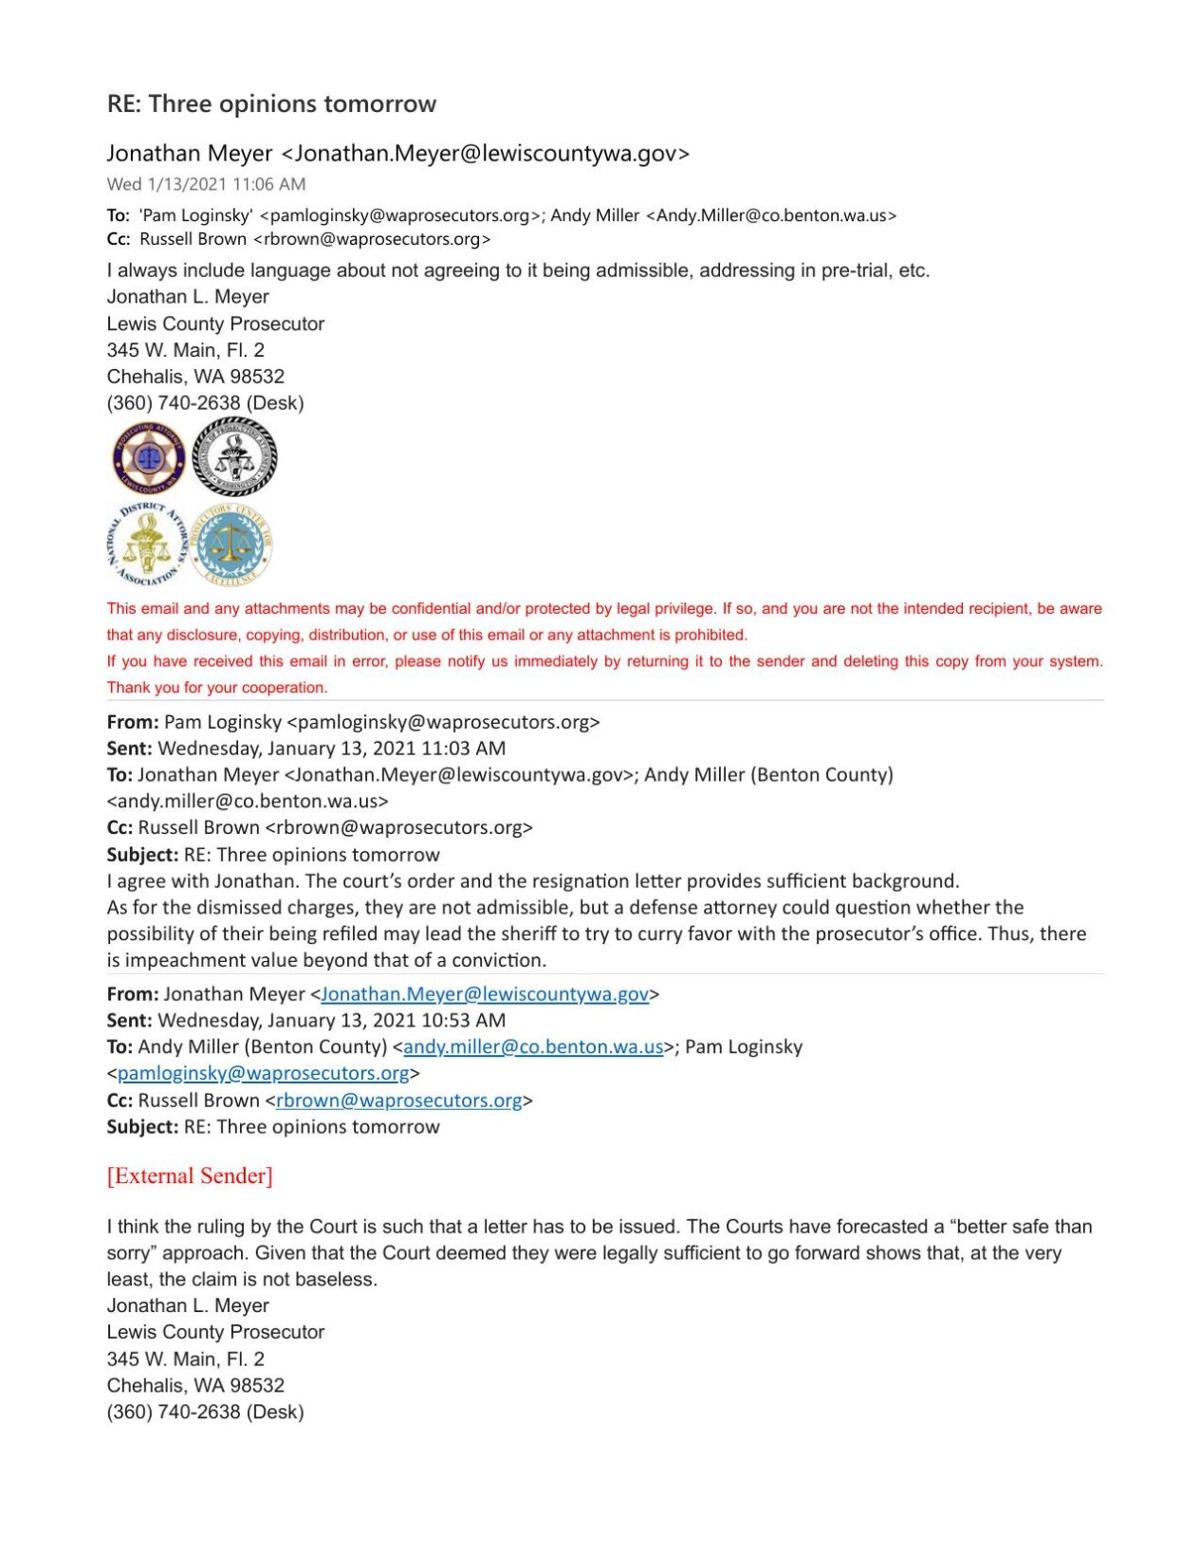 Email thread from  Pam Loginsky to Jonathan Meyer